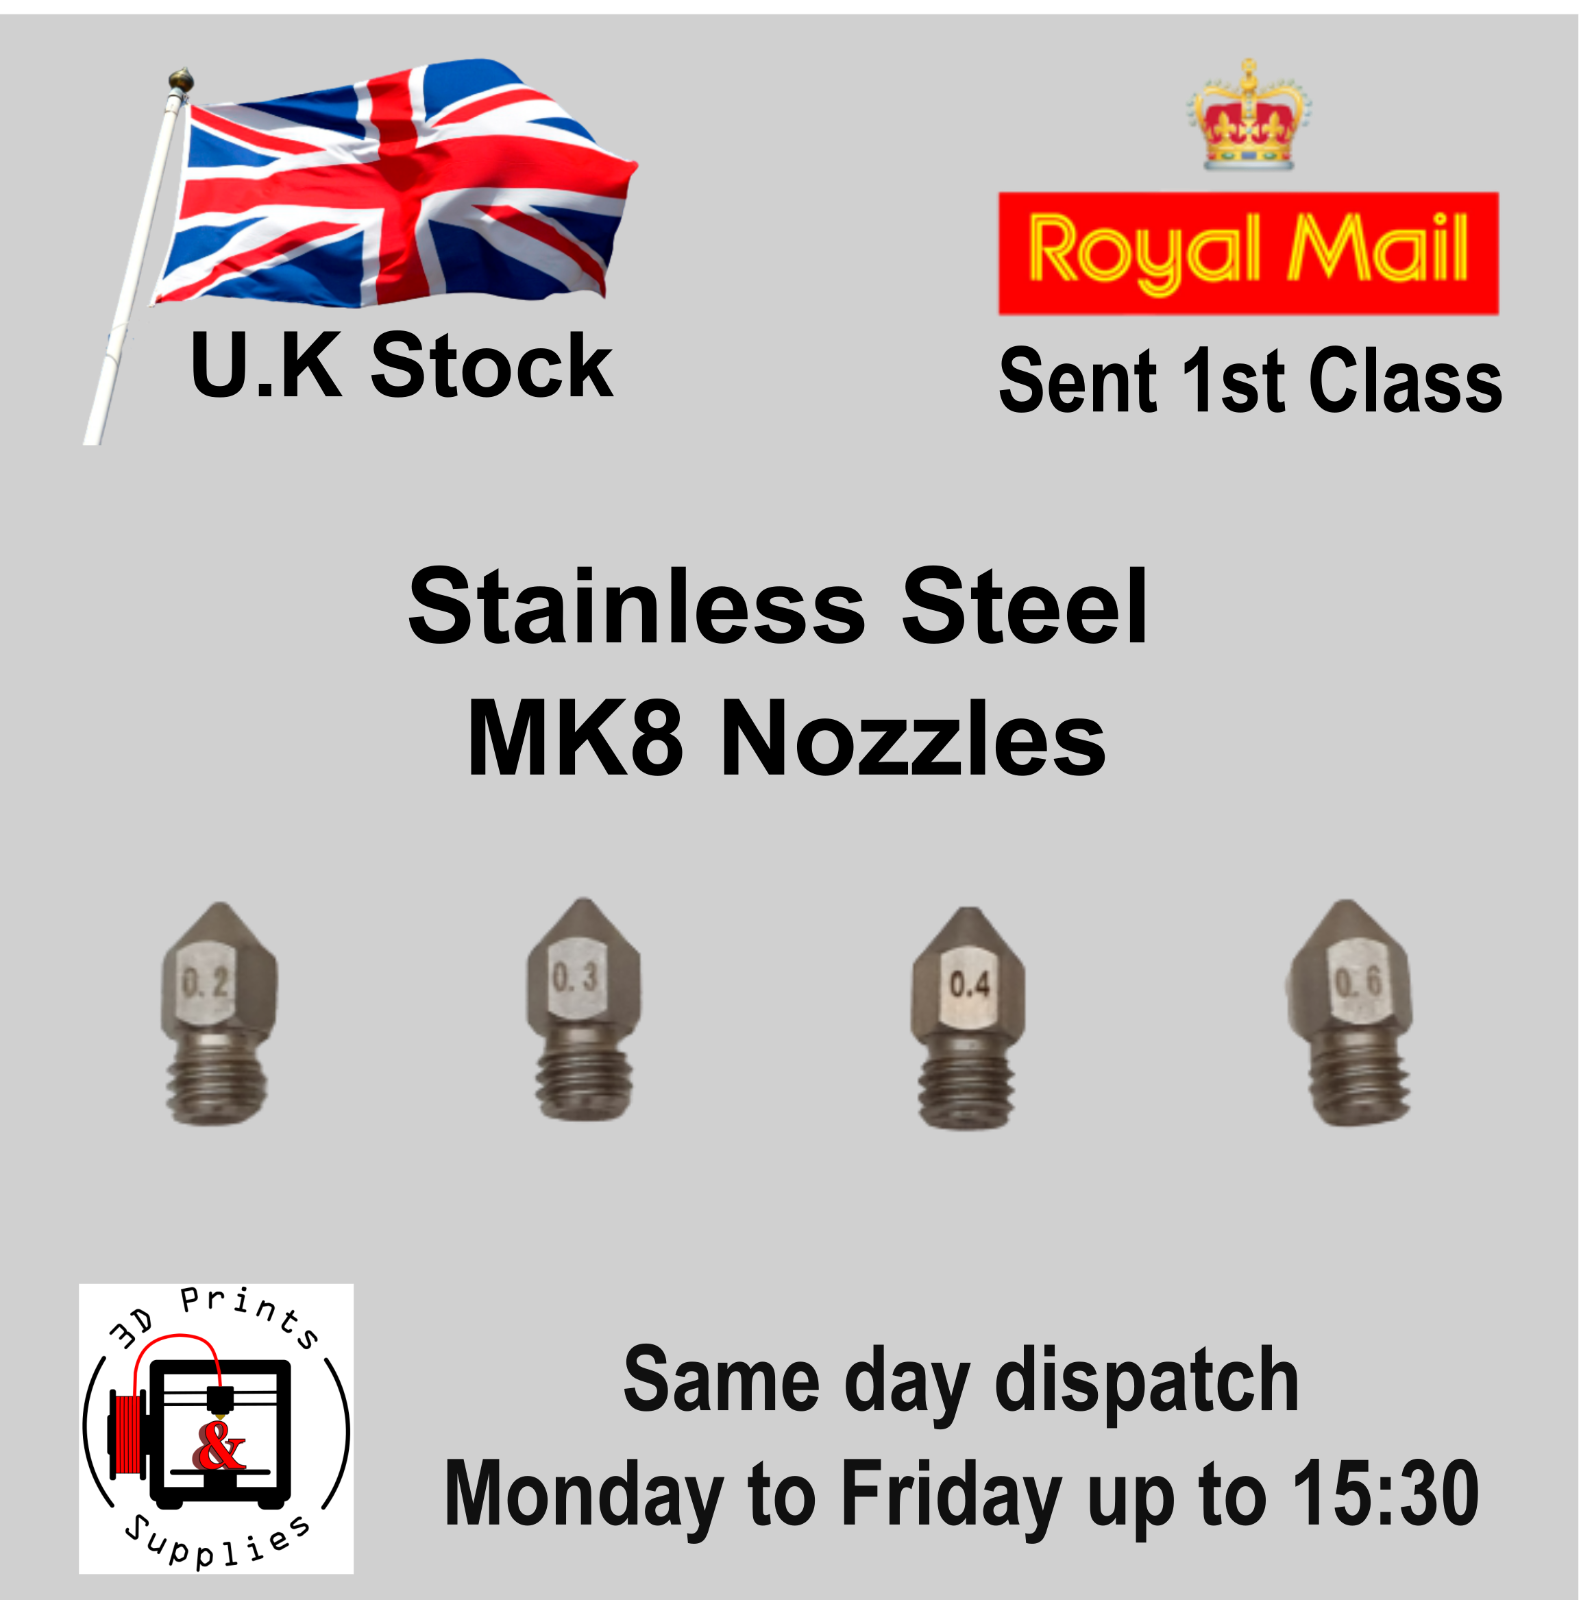 MK8 nozzle - Stainless Steel M6 1.75 extruder nozzle - 0.3